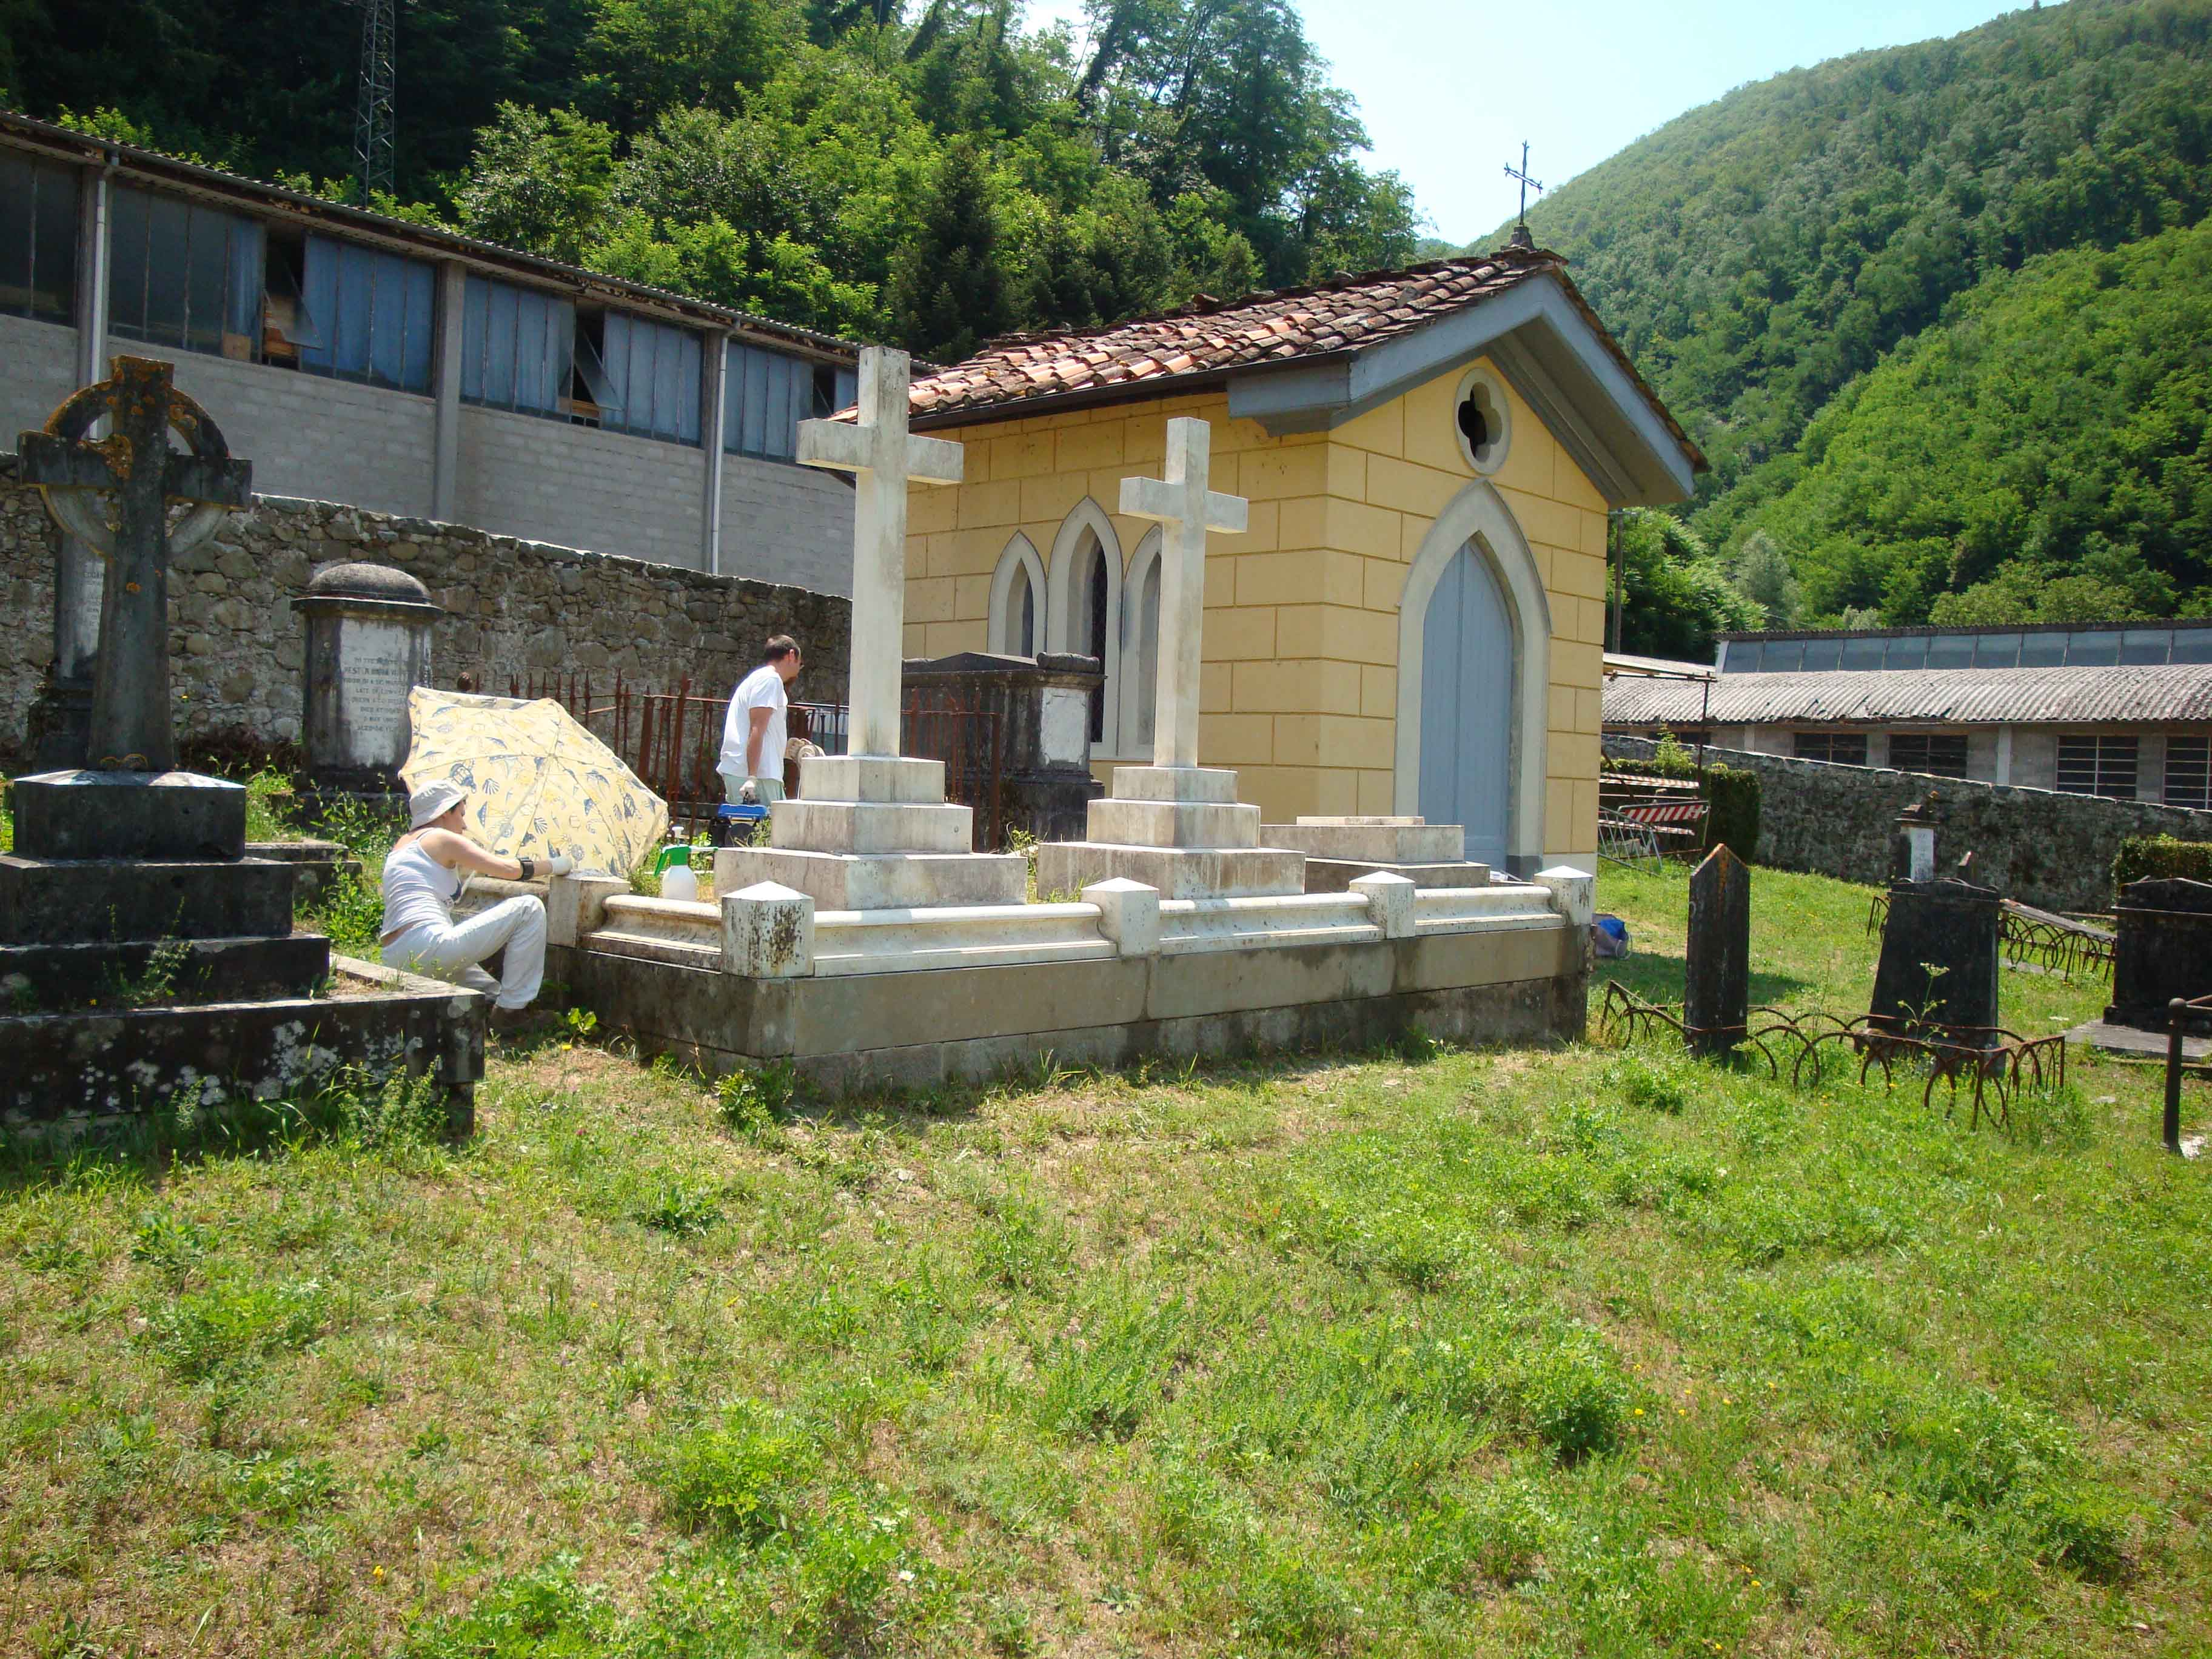 Restoration work at the English Cemetery, Bagni di Lucca, Italy